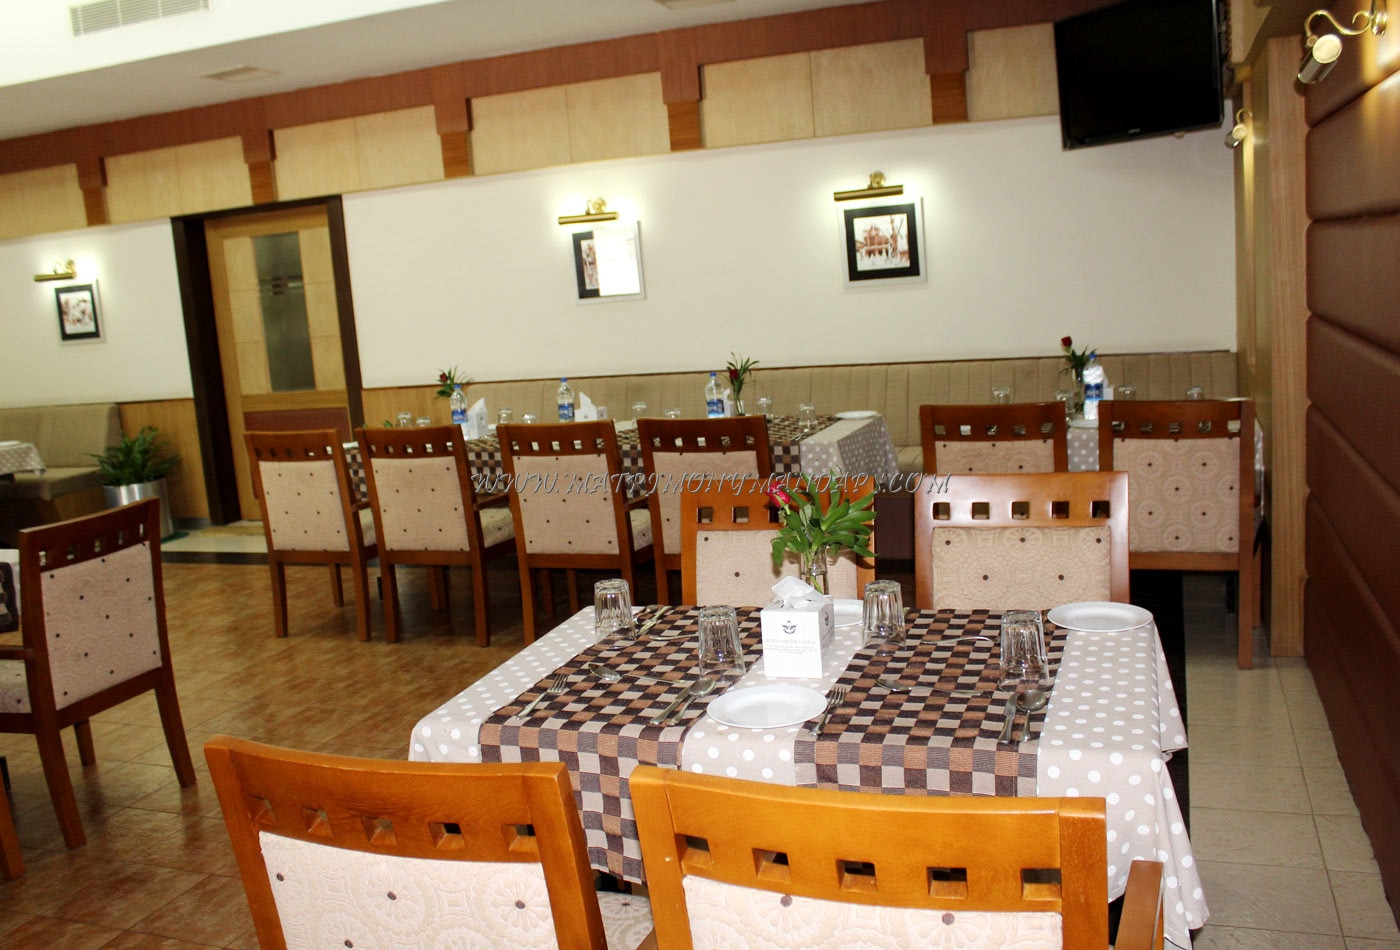 Find the availability of the Hotel Airlink Castle - Horizon Hall (A/C) in Angamaly, Kochi and avail special offers